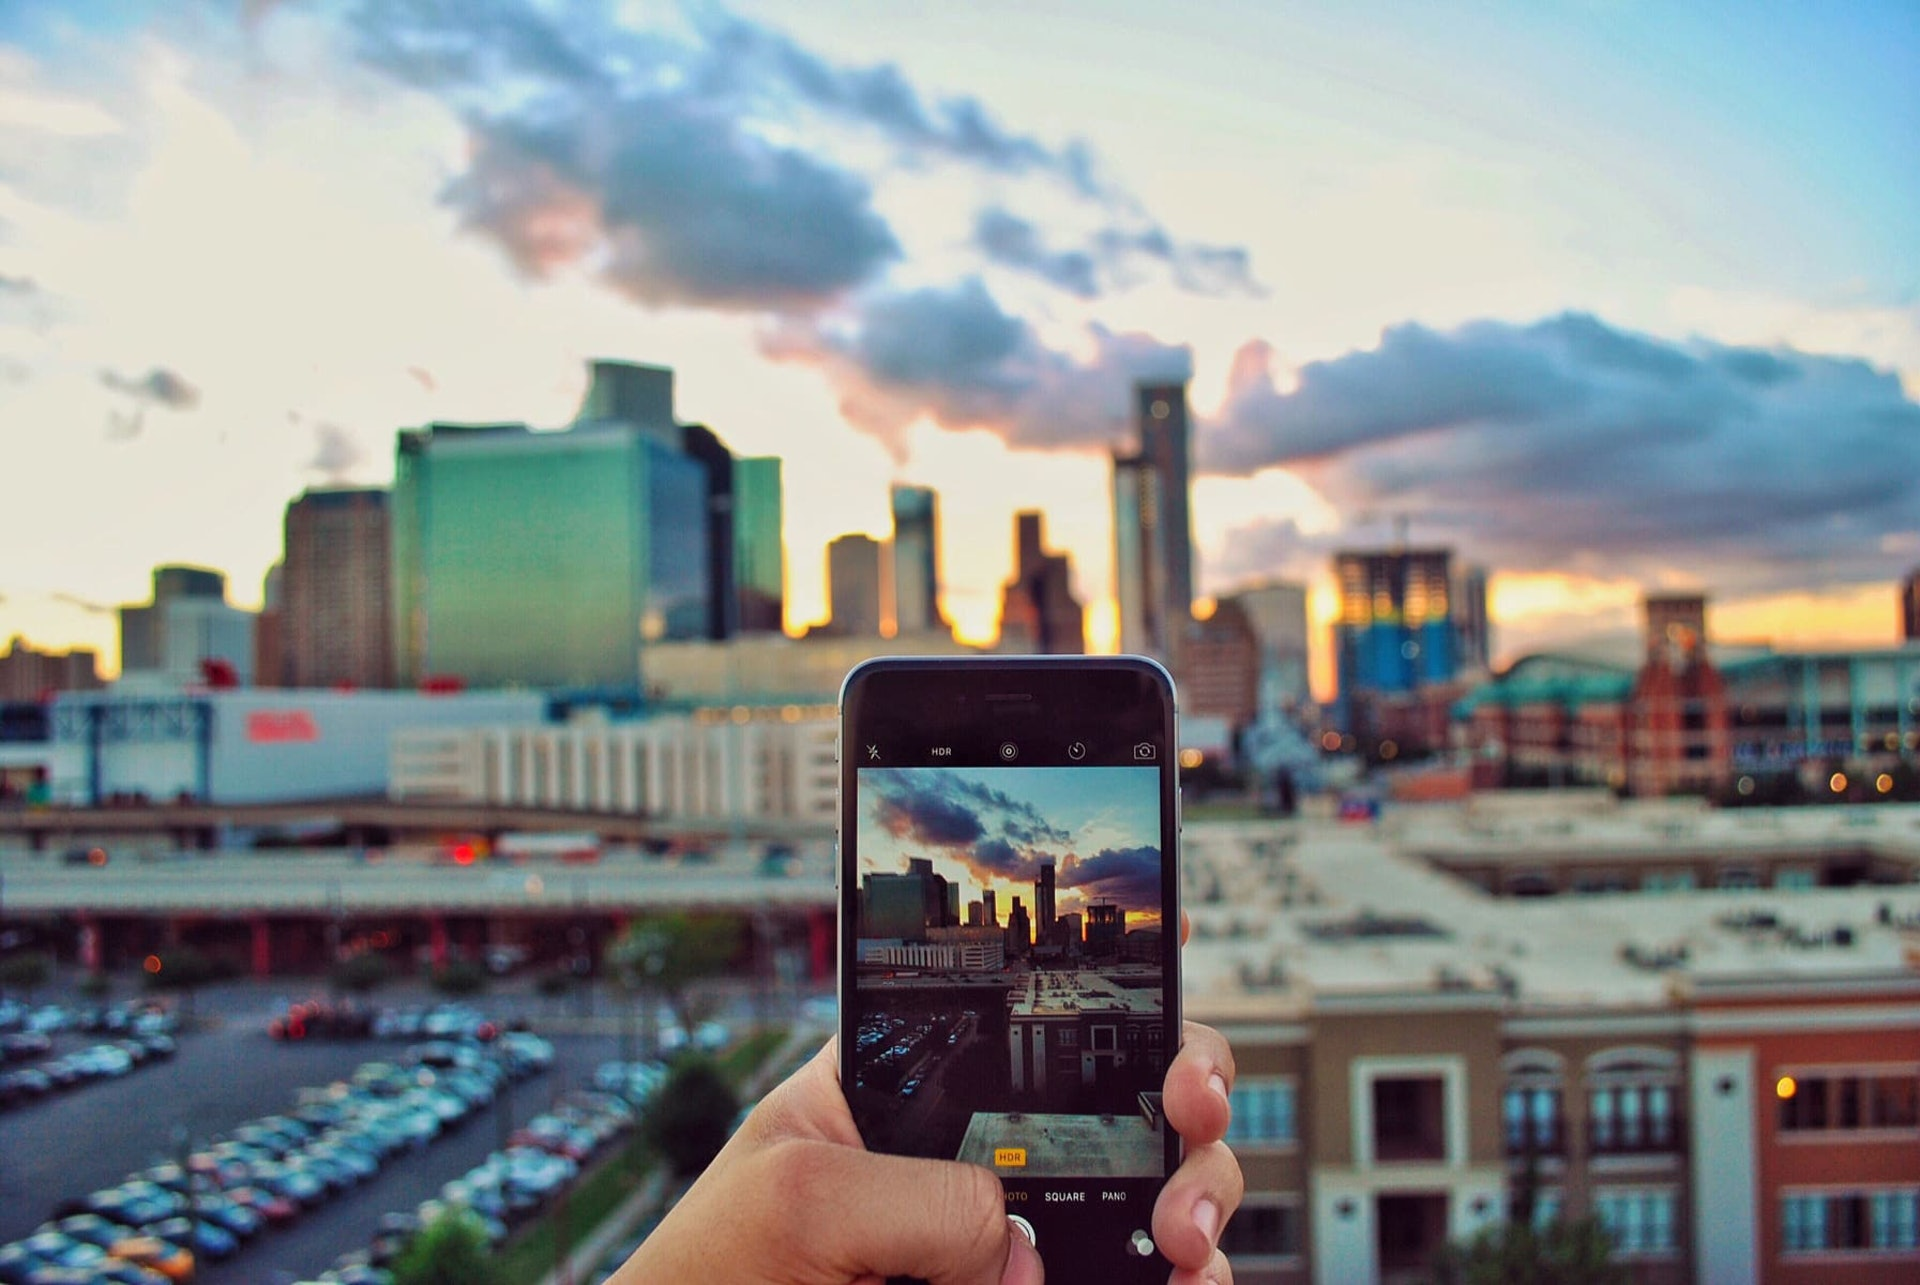 Person taking phone camera photo of skyline in Houston, Texas at sunset